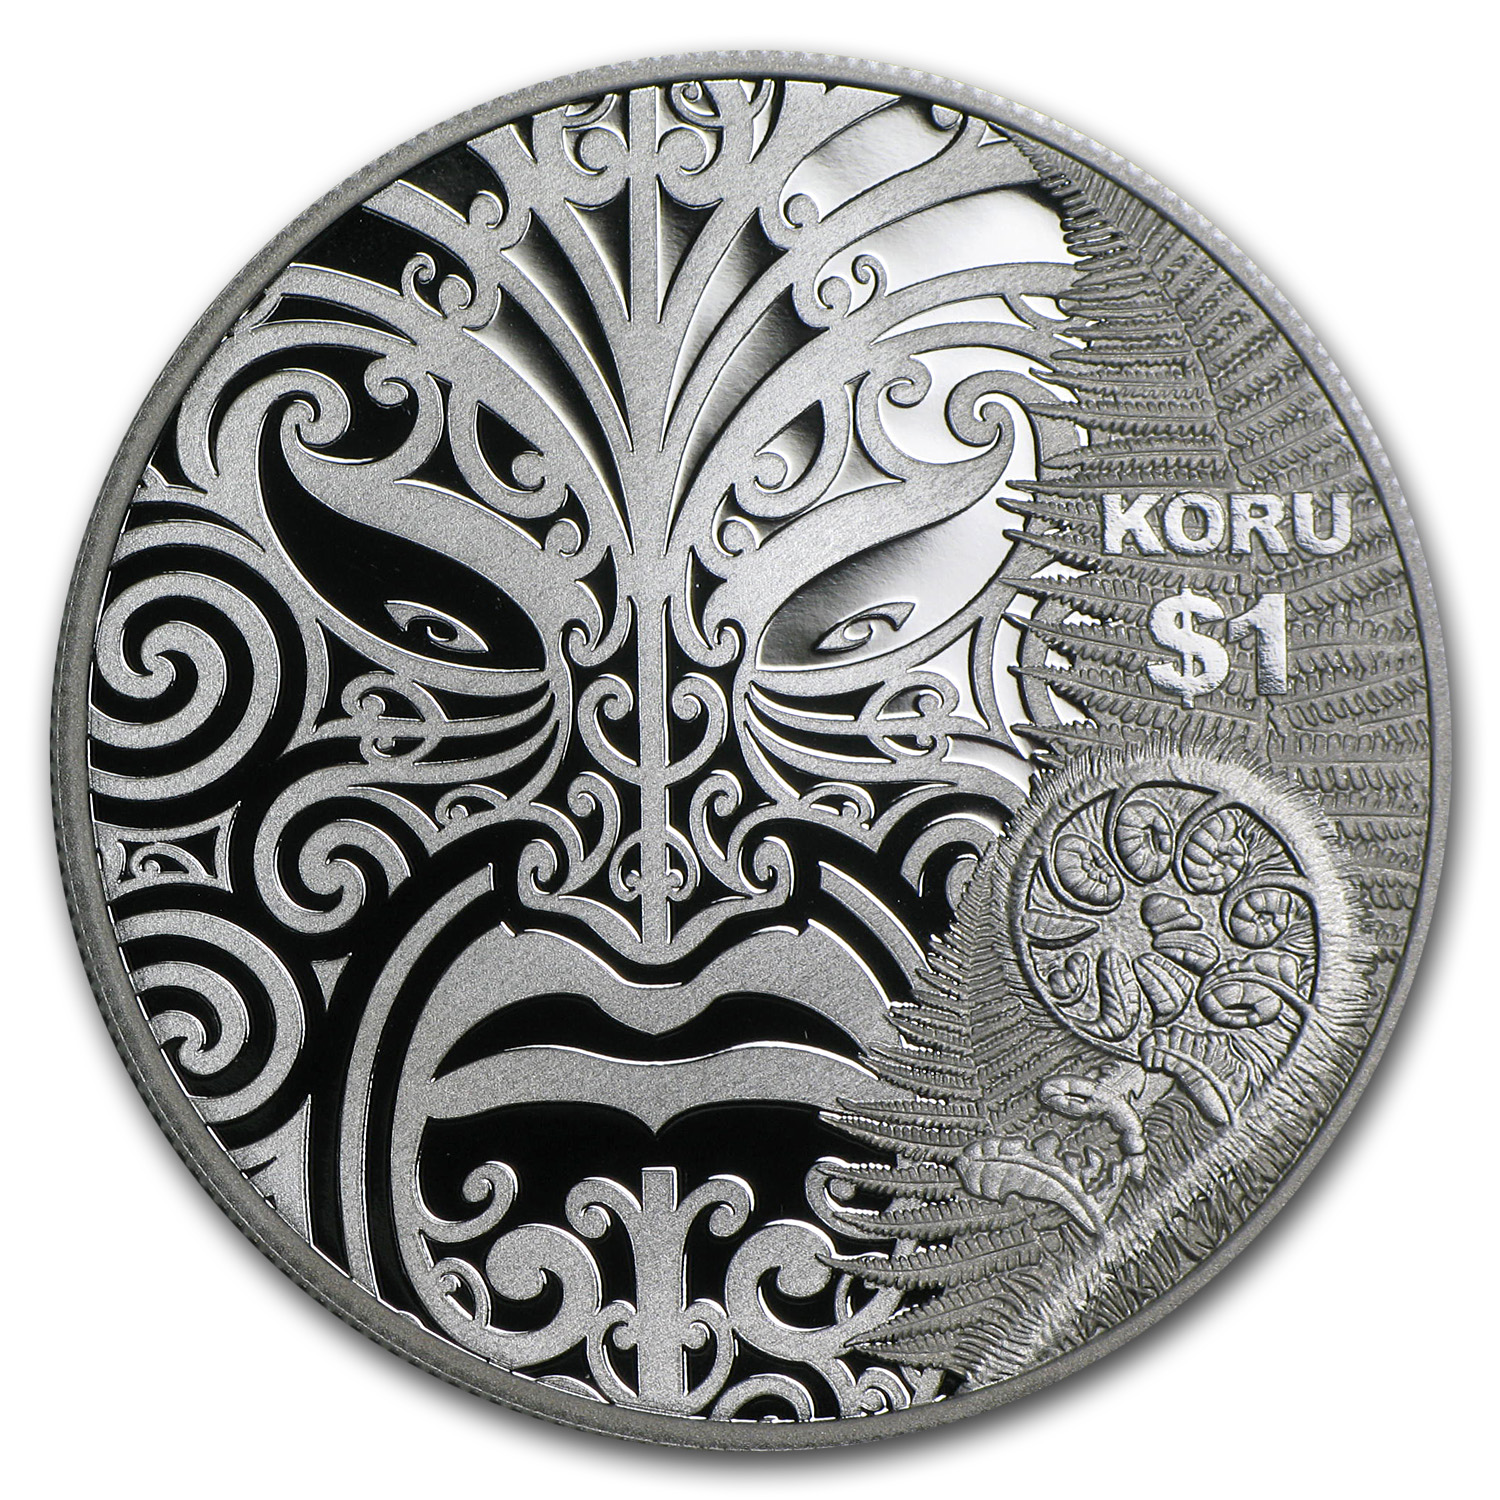 2013 New Zealand 1 oz Silver Maori Art Koru Proof